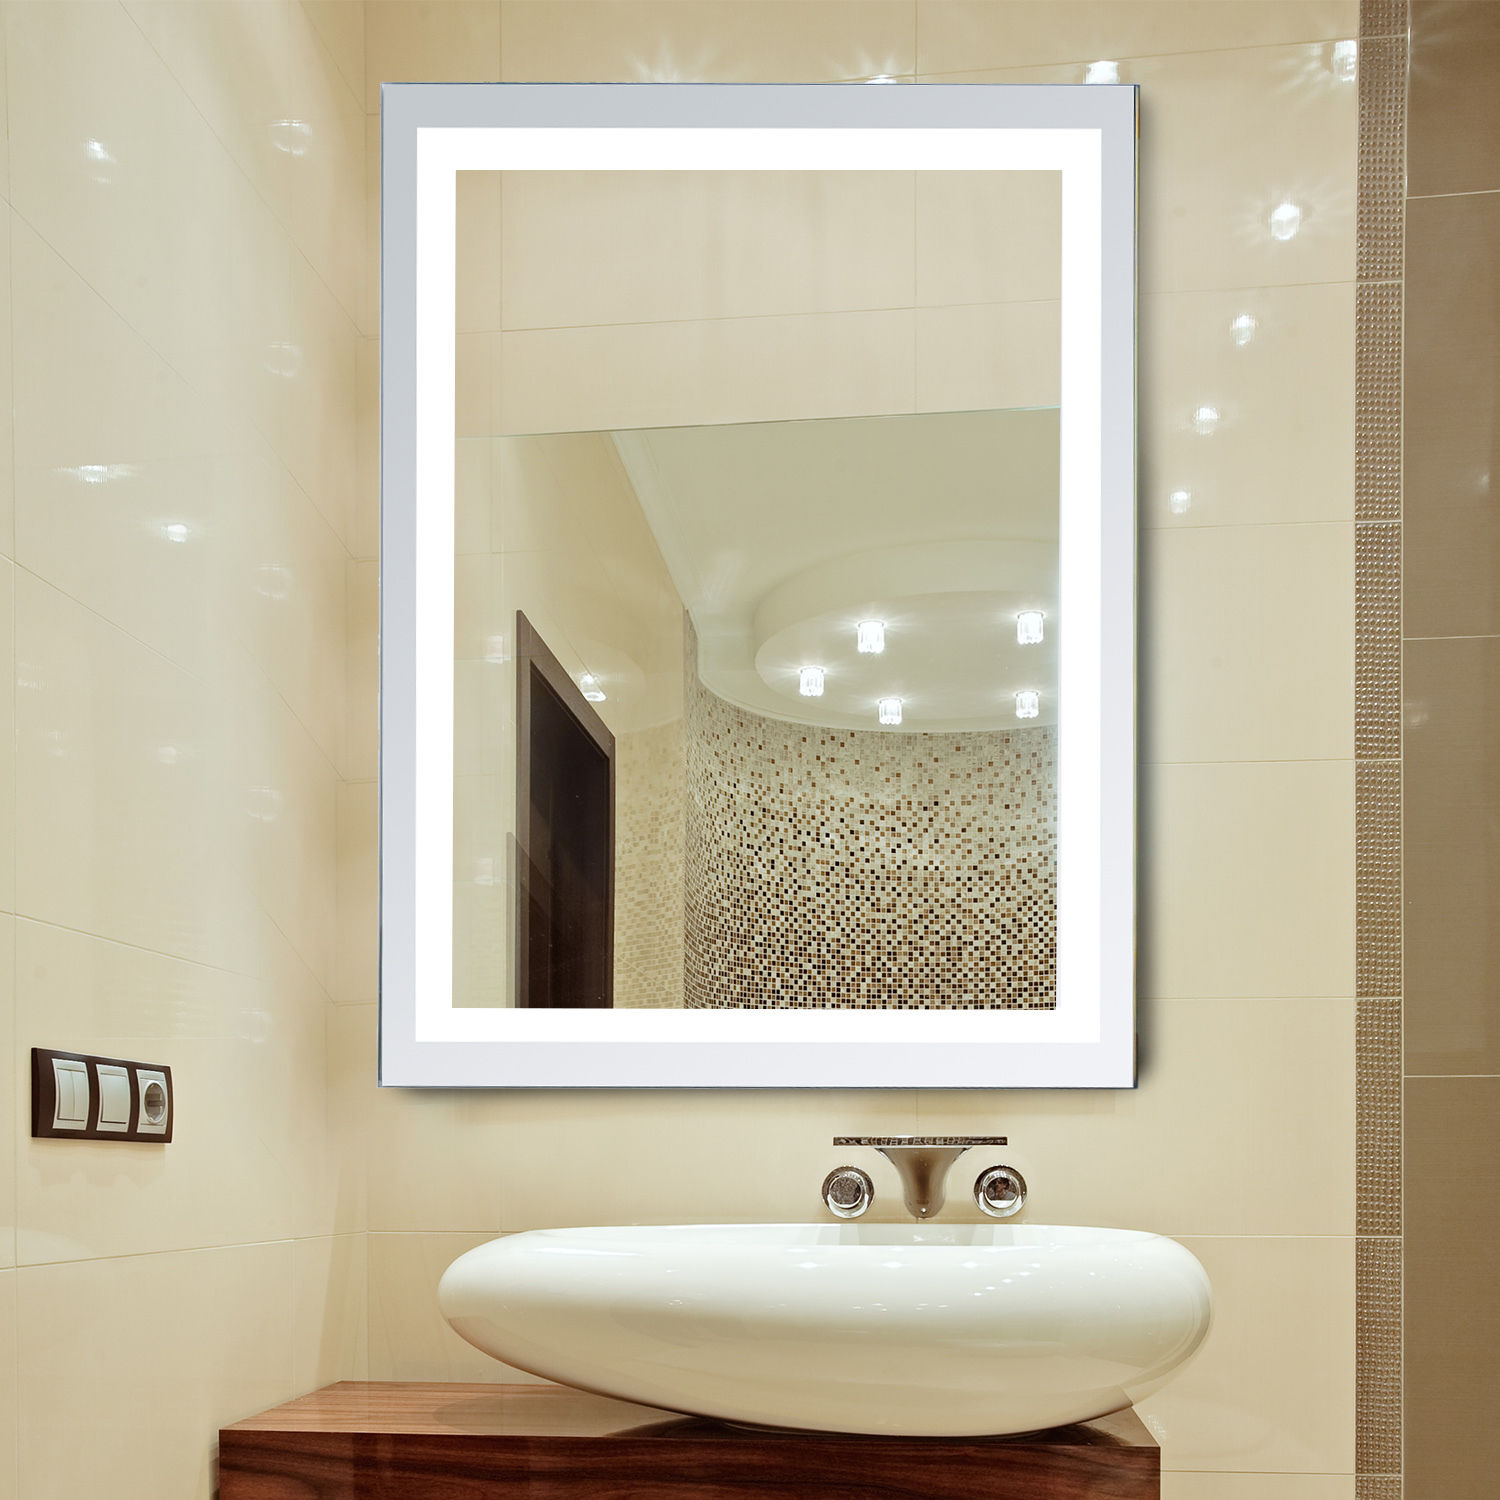 Astounding Details About Led Illuminated Bathroom Wall Mirrors With Lights Modern Makeup Vanity Mirror Download Free Architecture Designs Terstmadebymaigaardcom